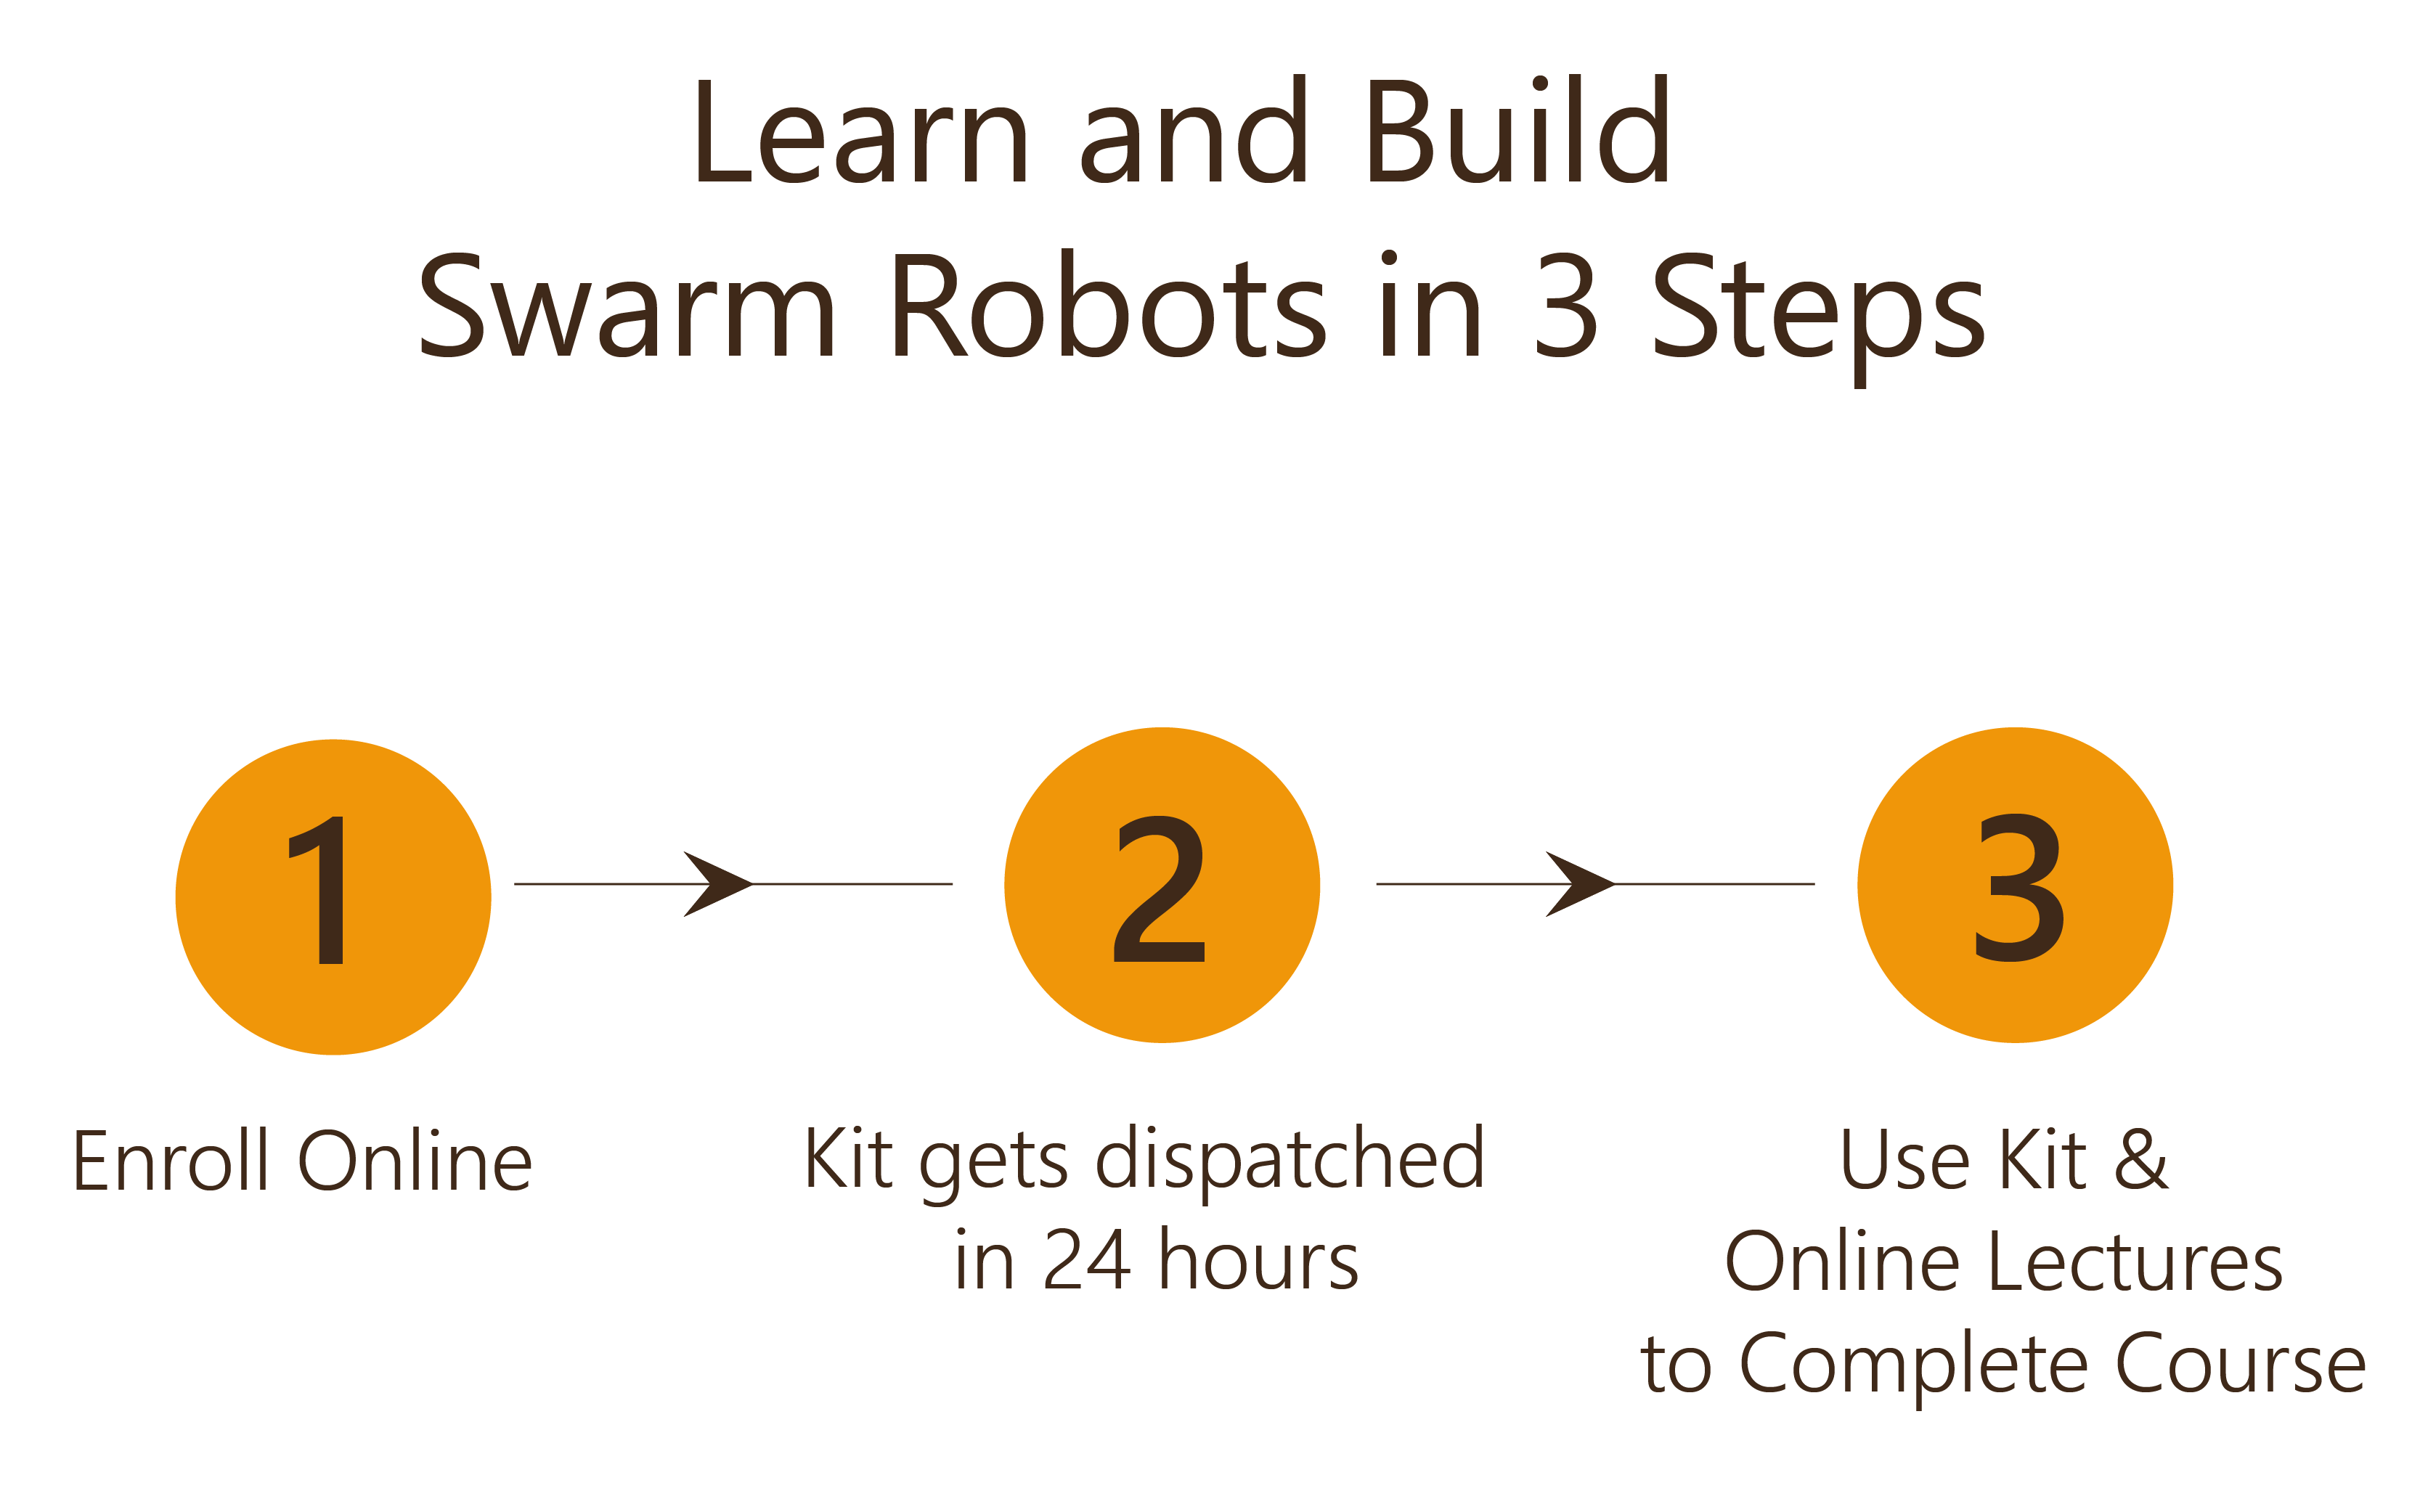 Learn and Build Swarm Robots in 3 Steps